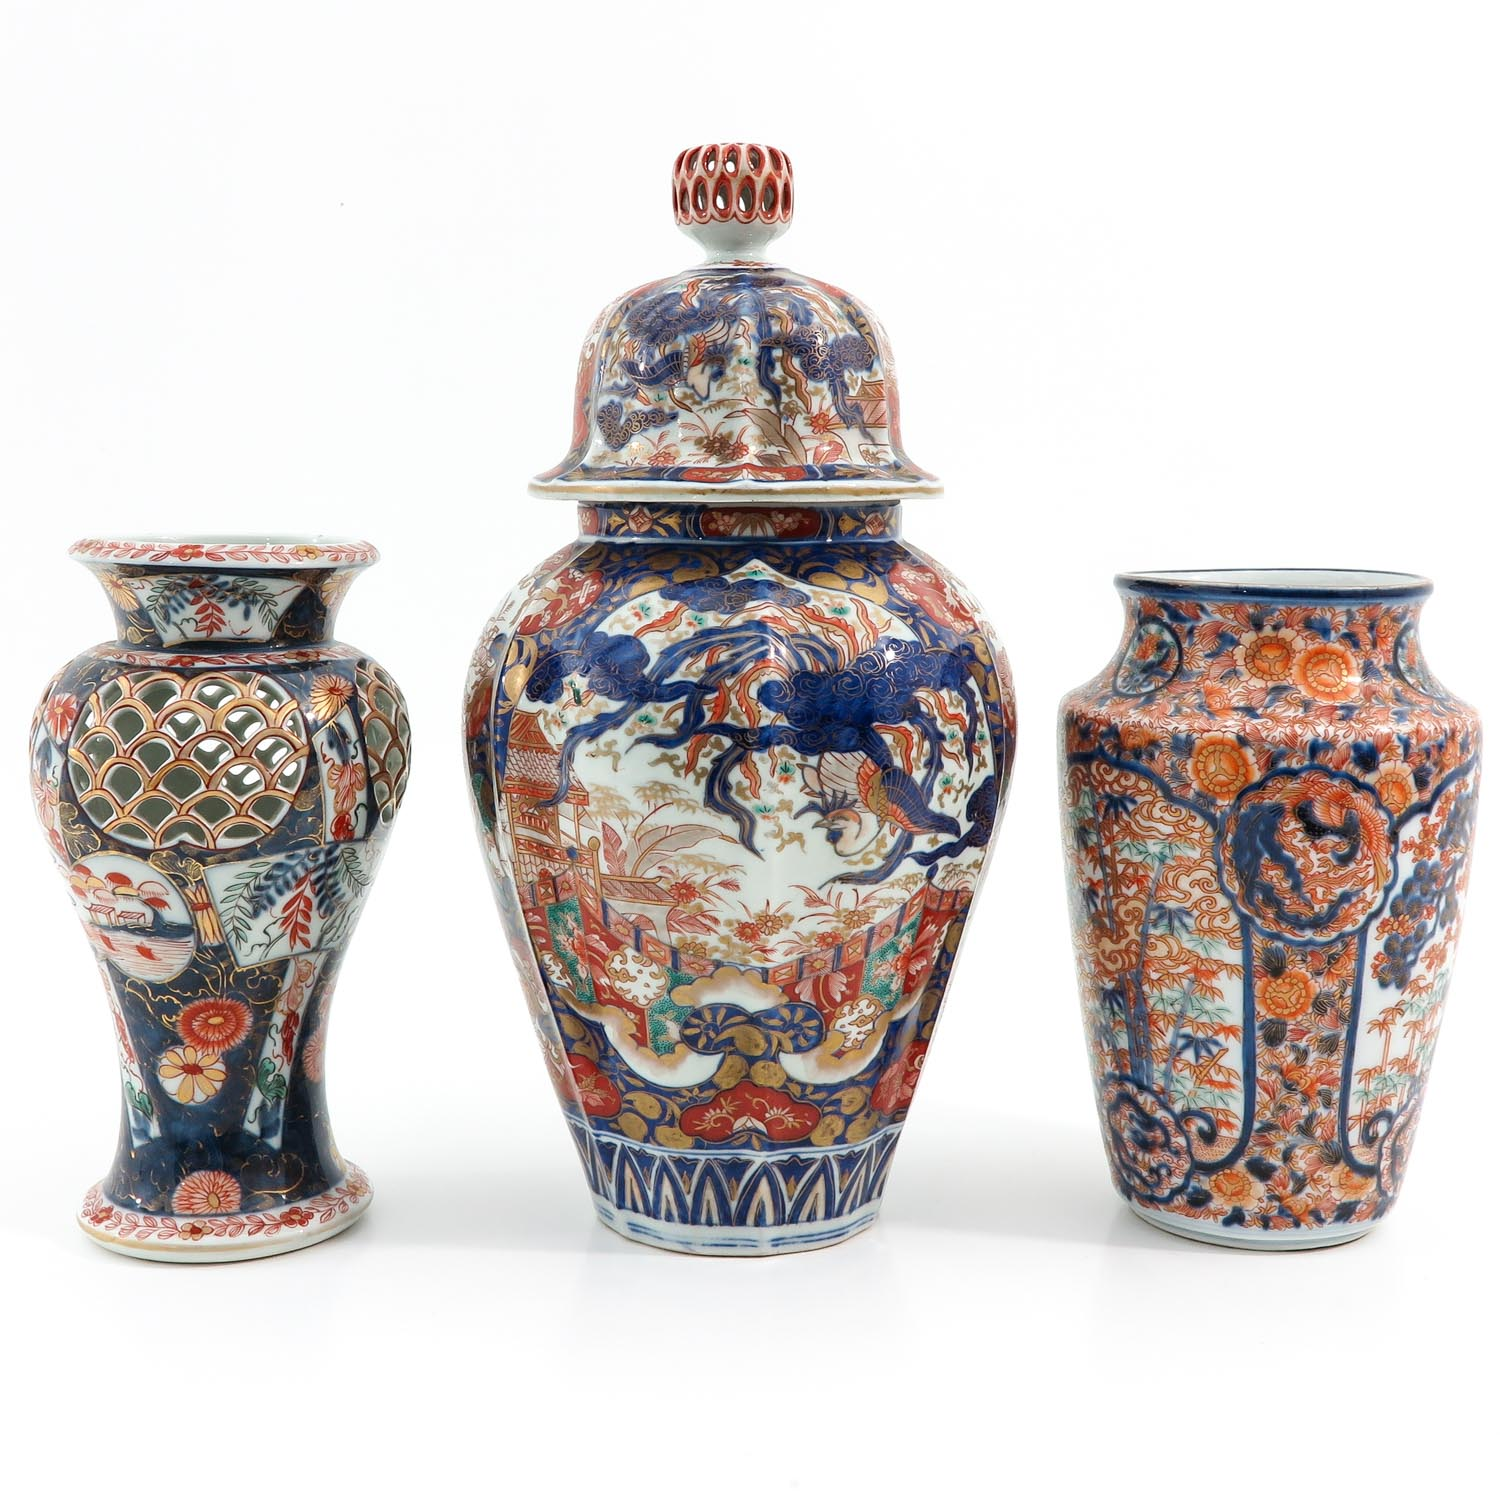 A Collection of 3 Imari Vases - Image 3 of 9